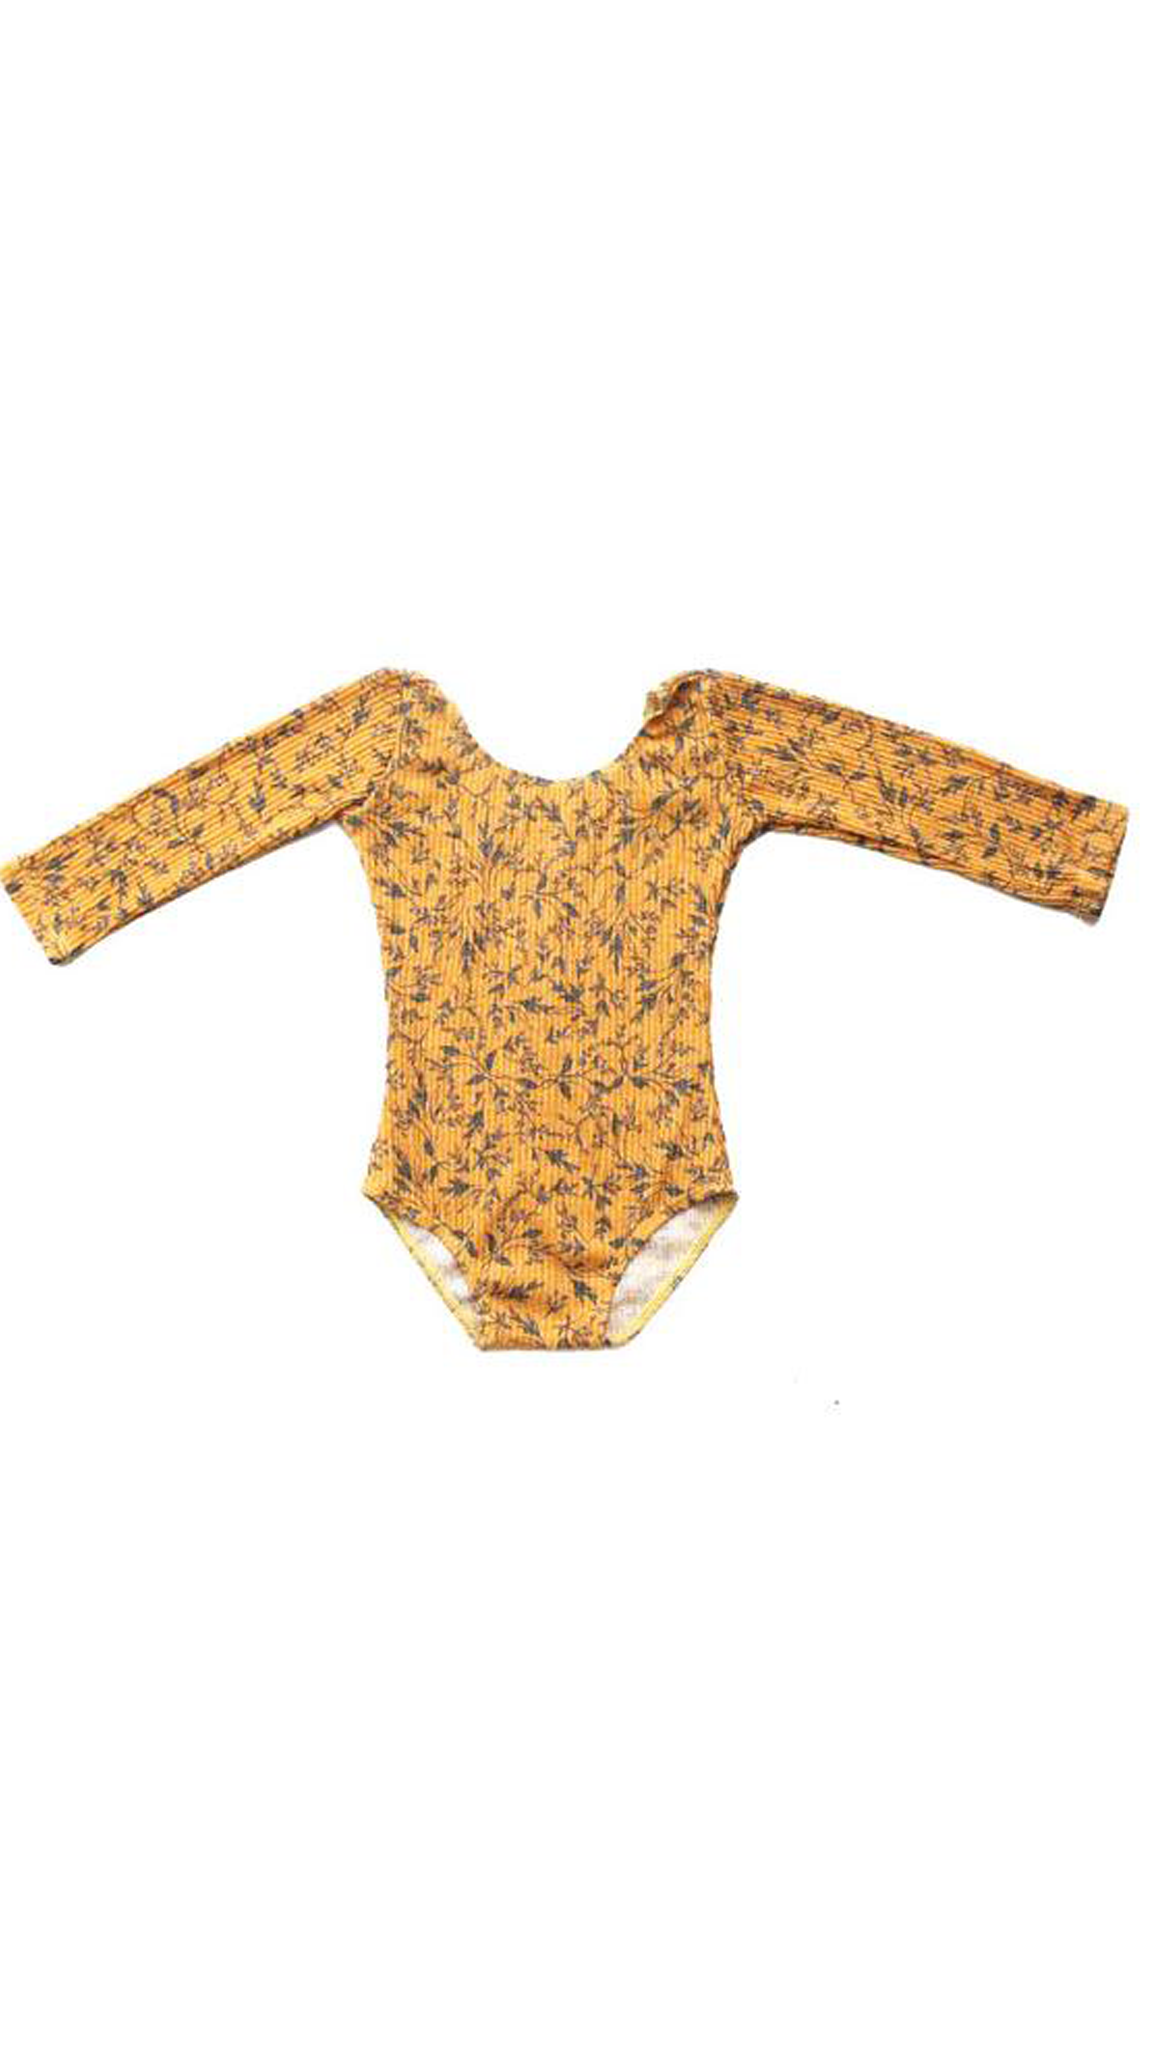 Harlow Jade, Sunny Bodysuit - Yellow Floral